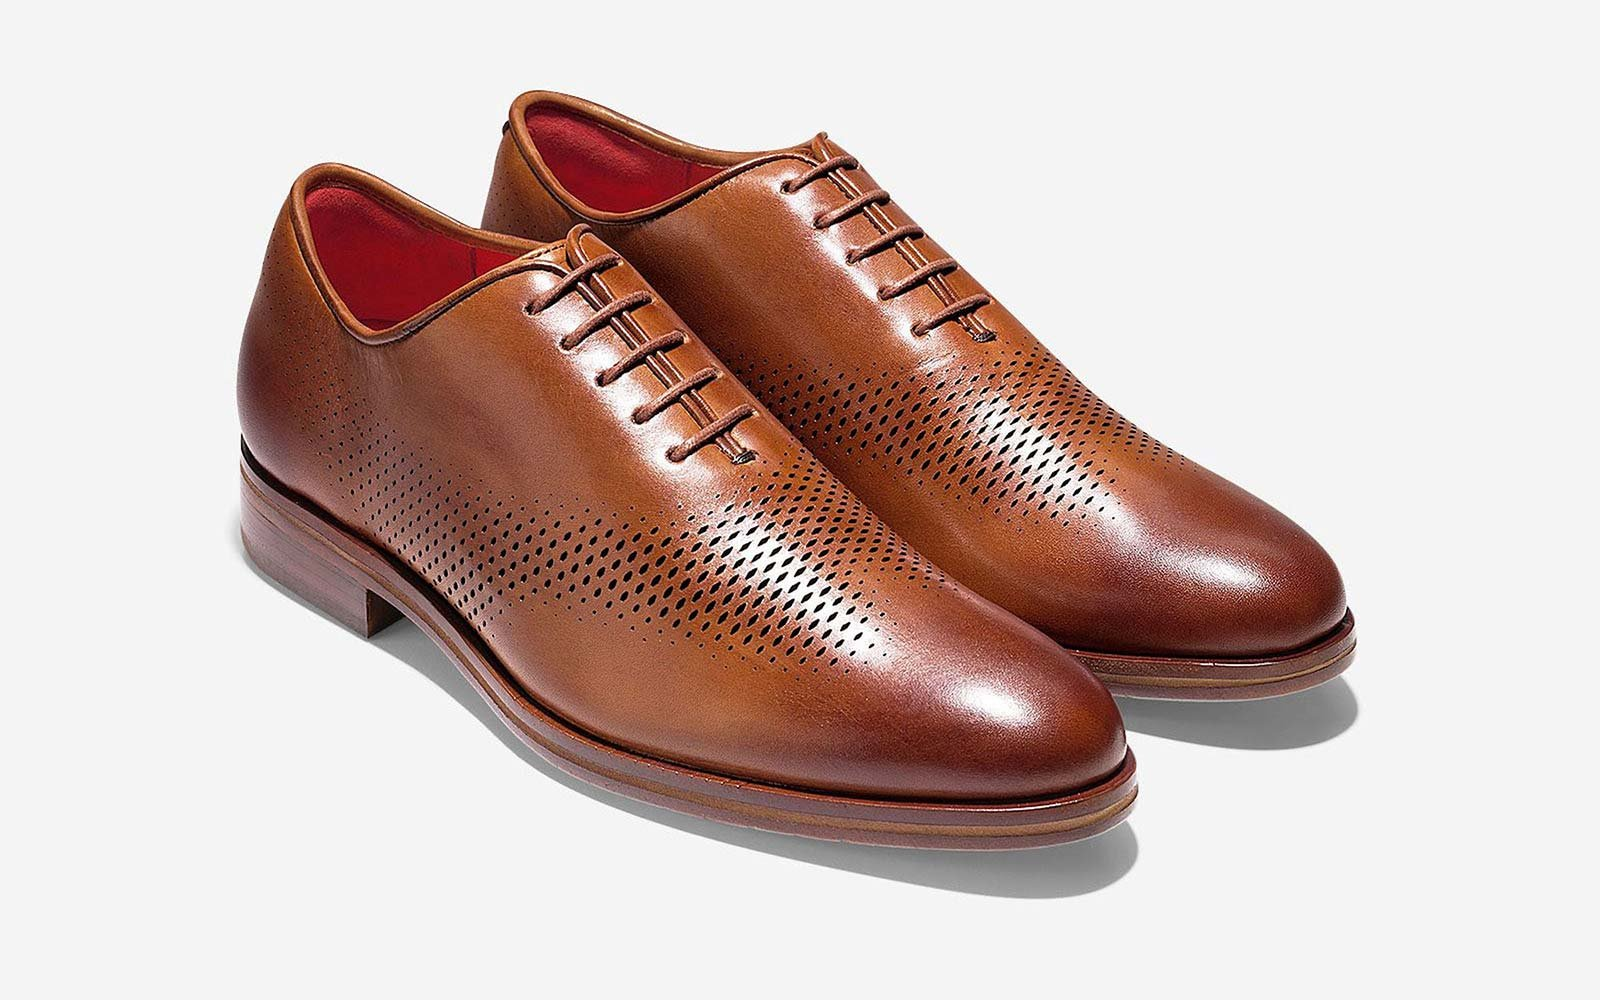 Top 10 Men Formal Shoes Styles And Ideas How to Wear them recommend